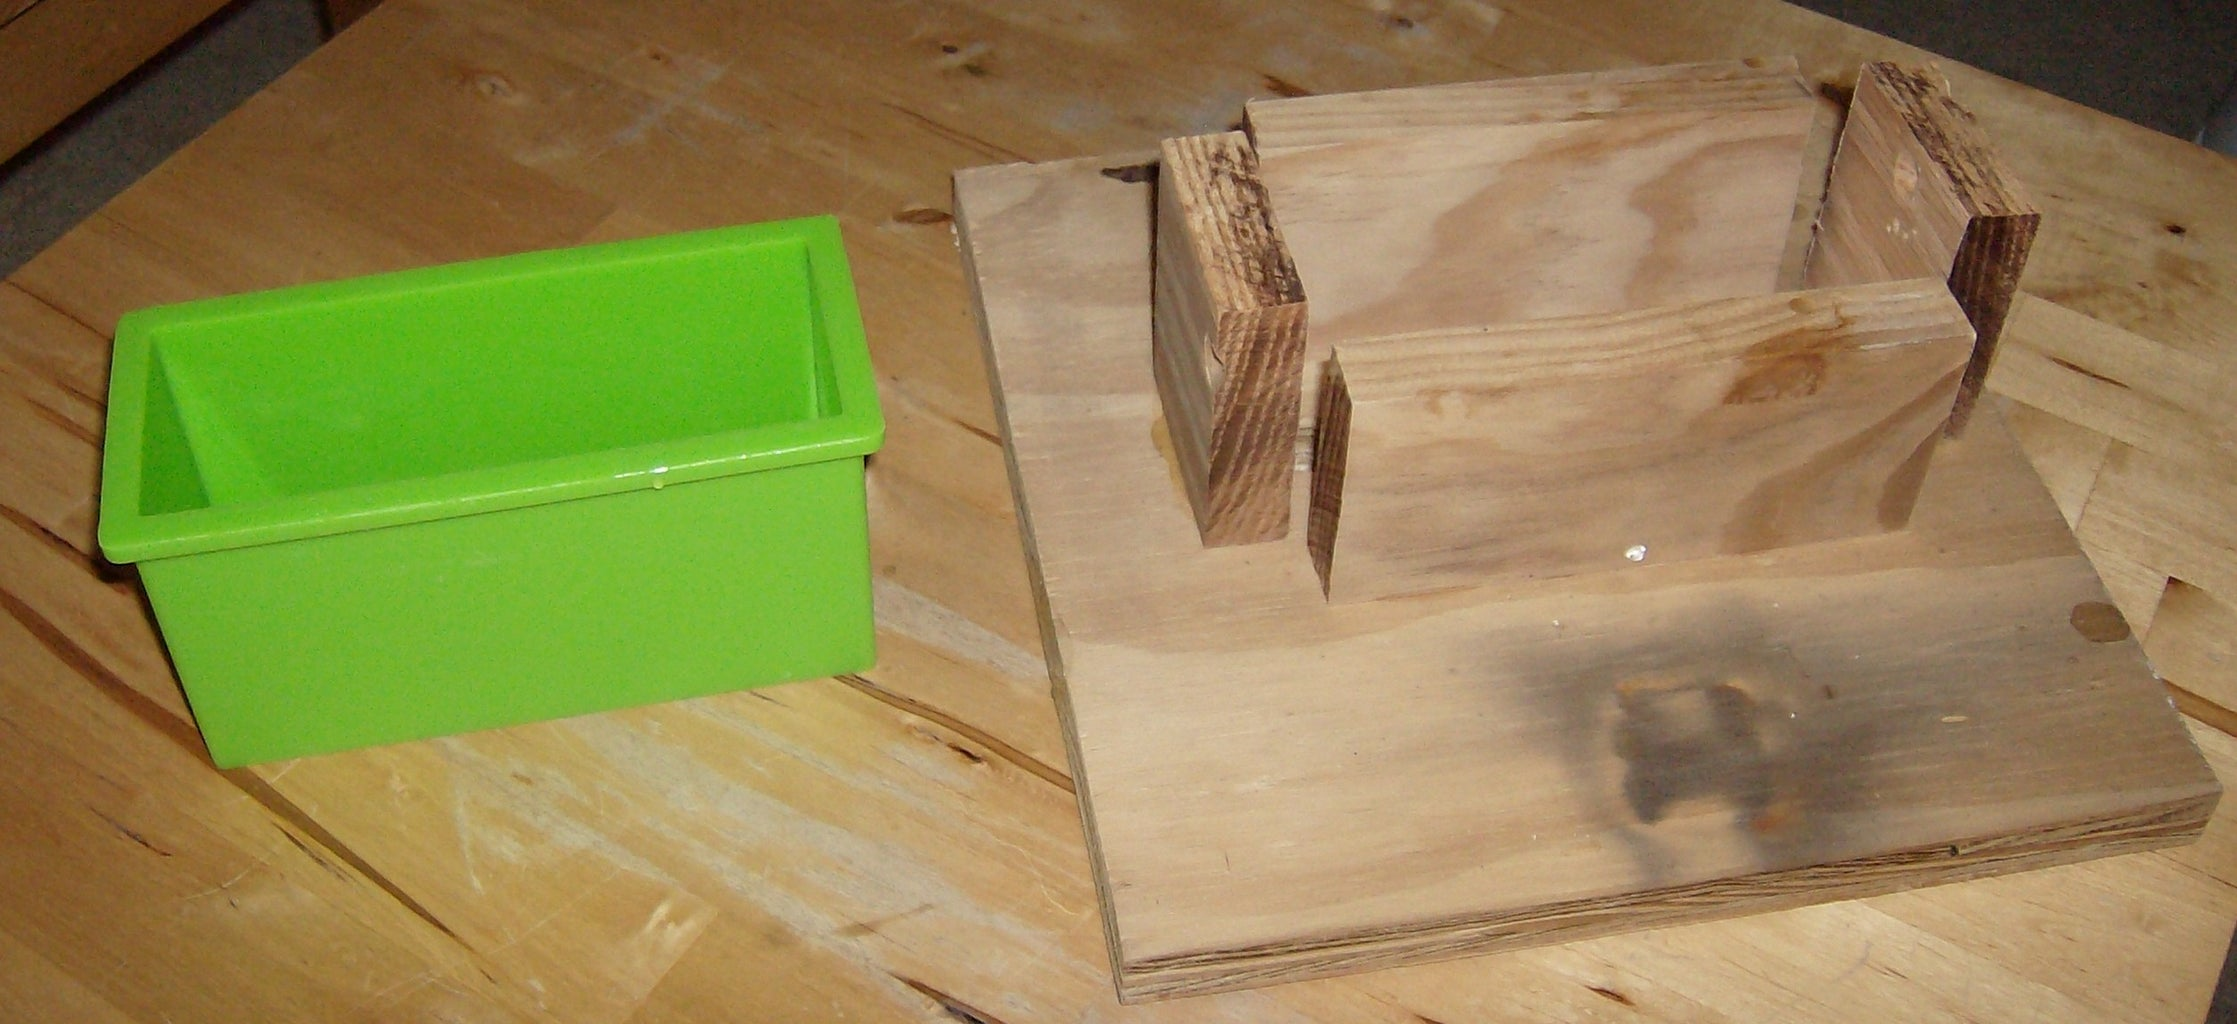 Build the Mold Support Fixture